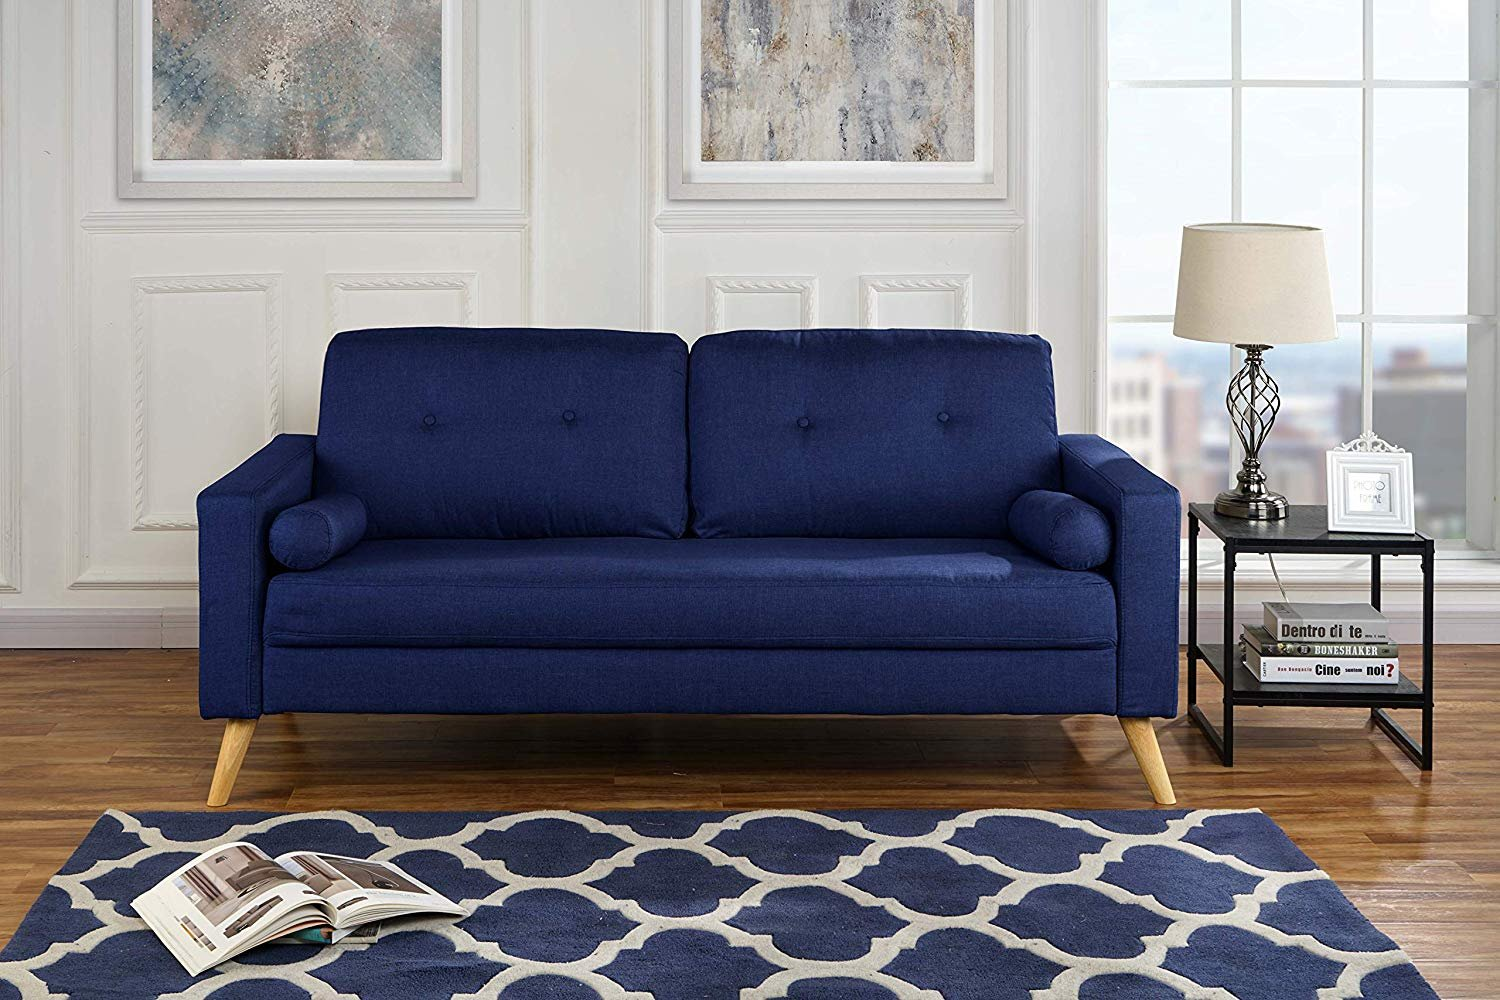 Details about modern living room fabric sofa lounge room couch with tufted buttons dark blue